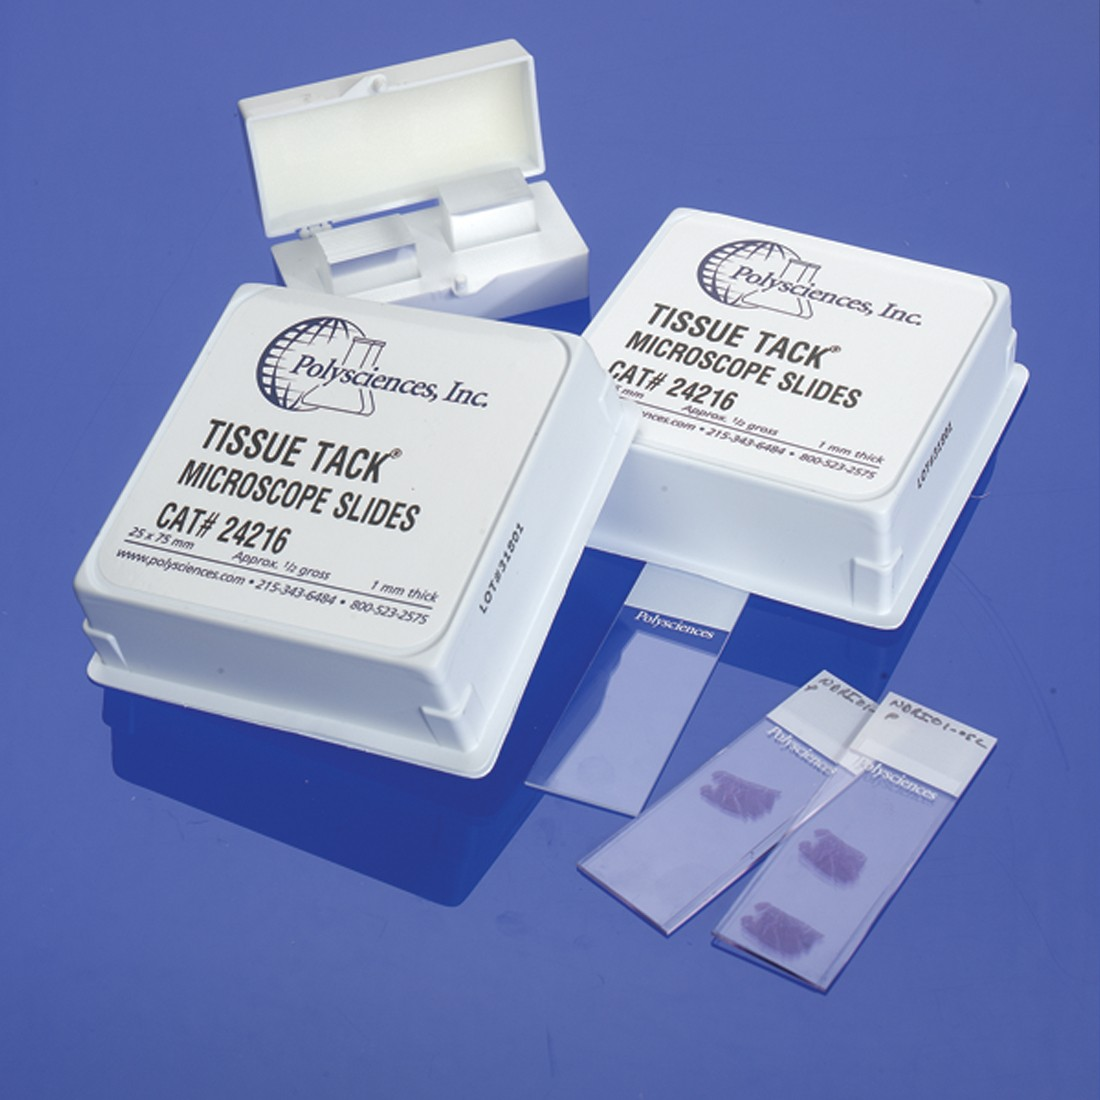 Tissue Tack (+ Charged) Microscope Slides | Polysciences, Inc.